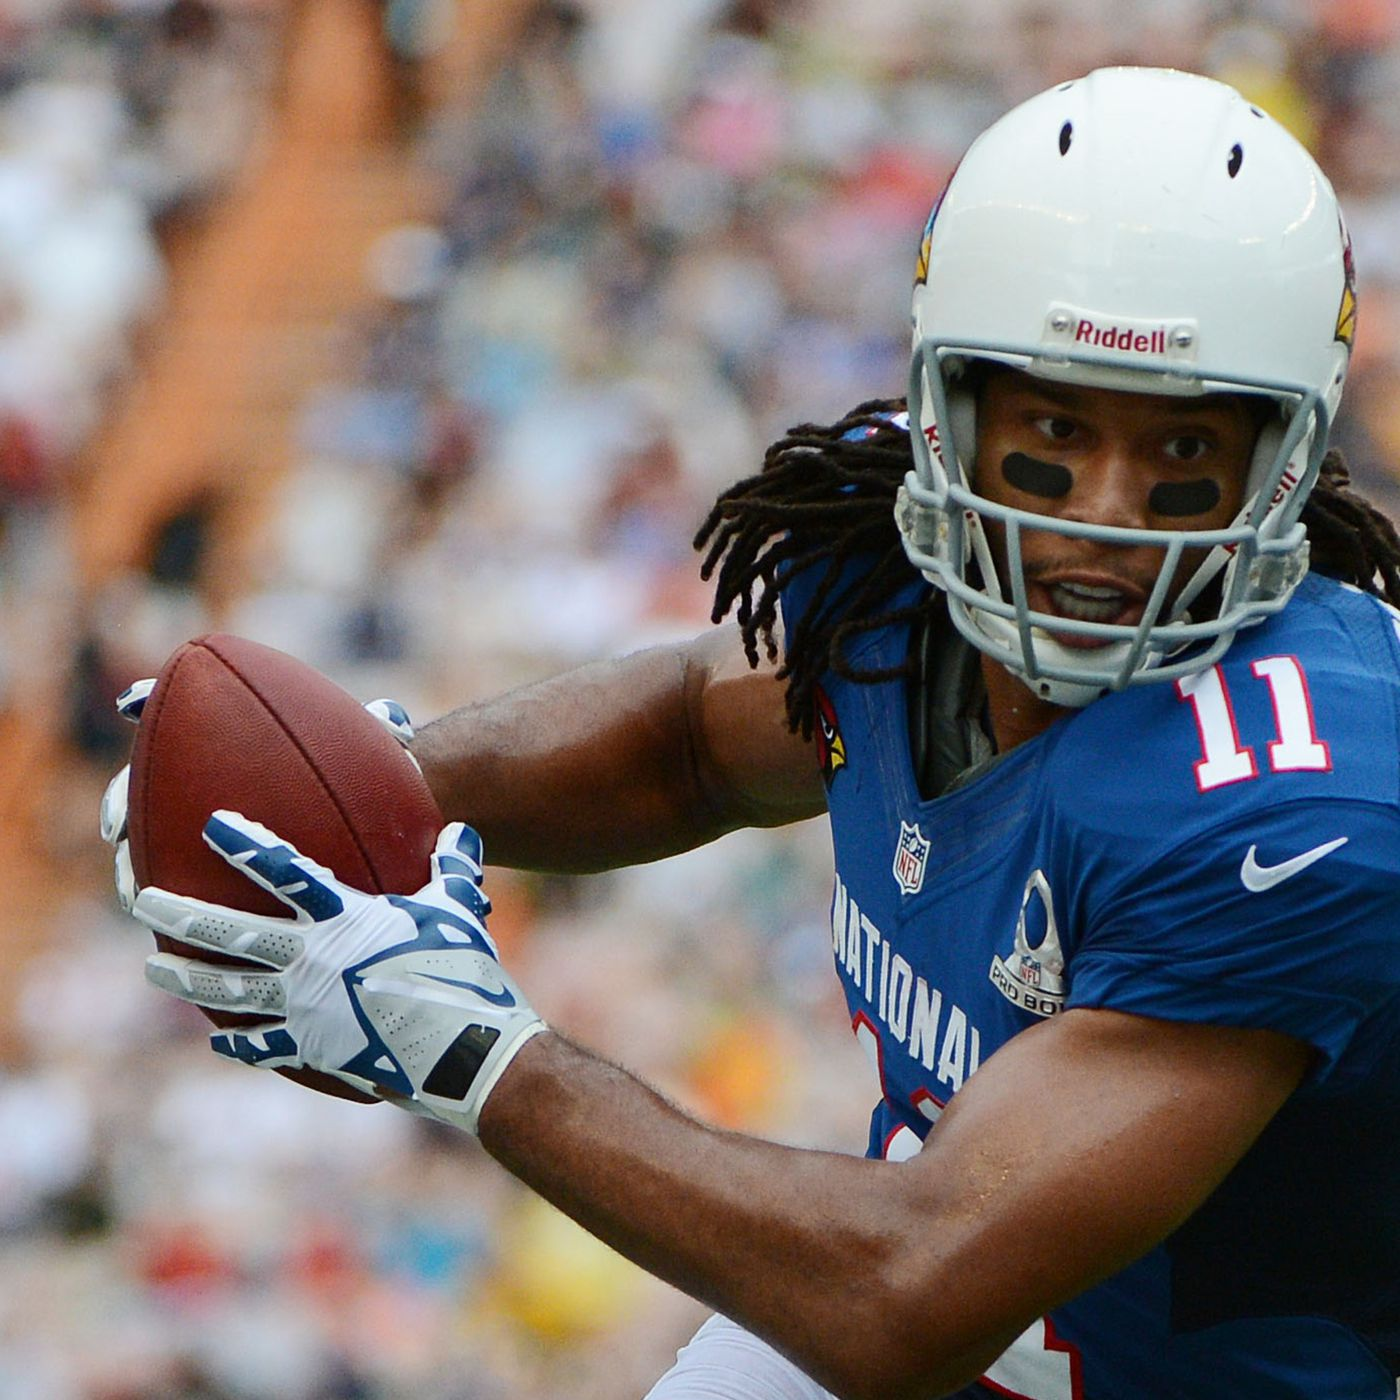 f94593814 Pro Bowl 2013: Larry Fitzgerald extends record with 8th touchdown reception